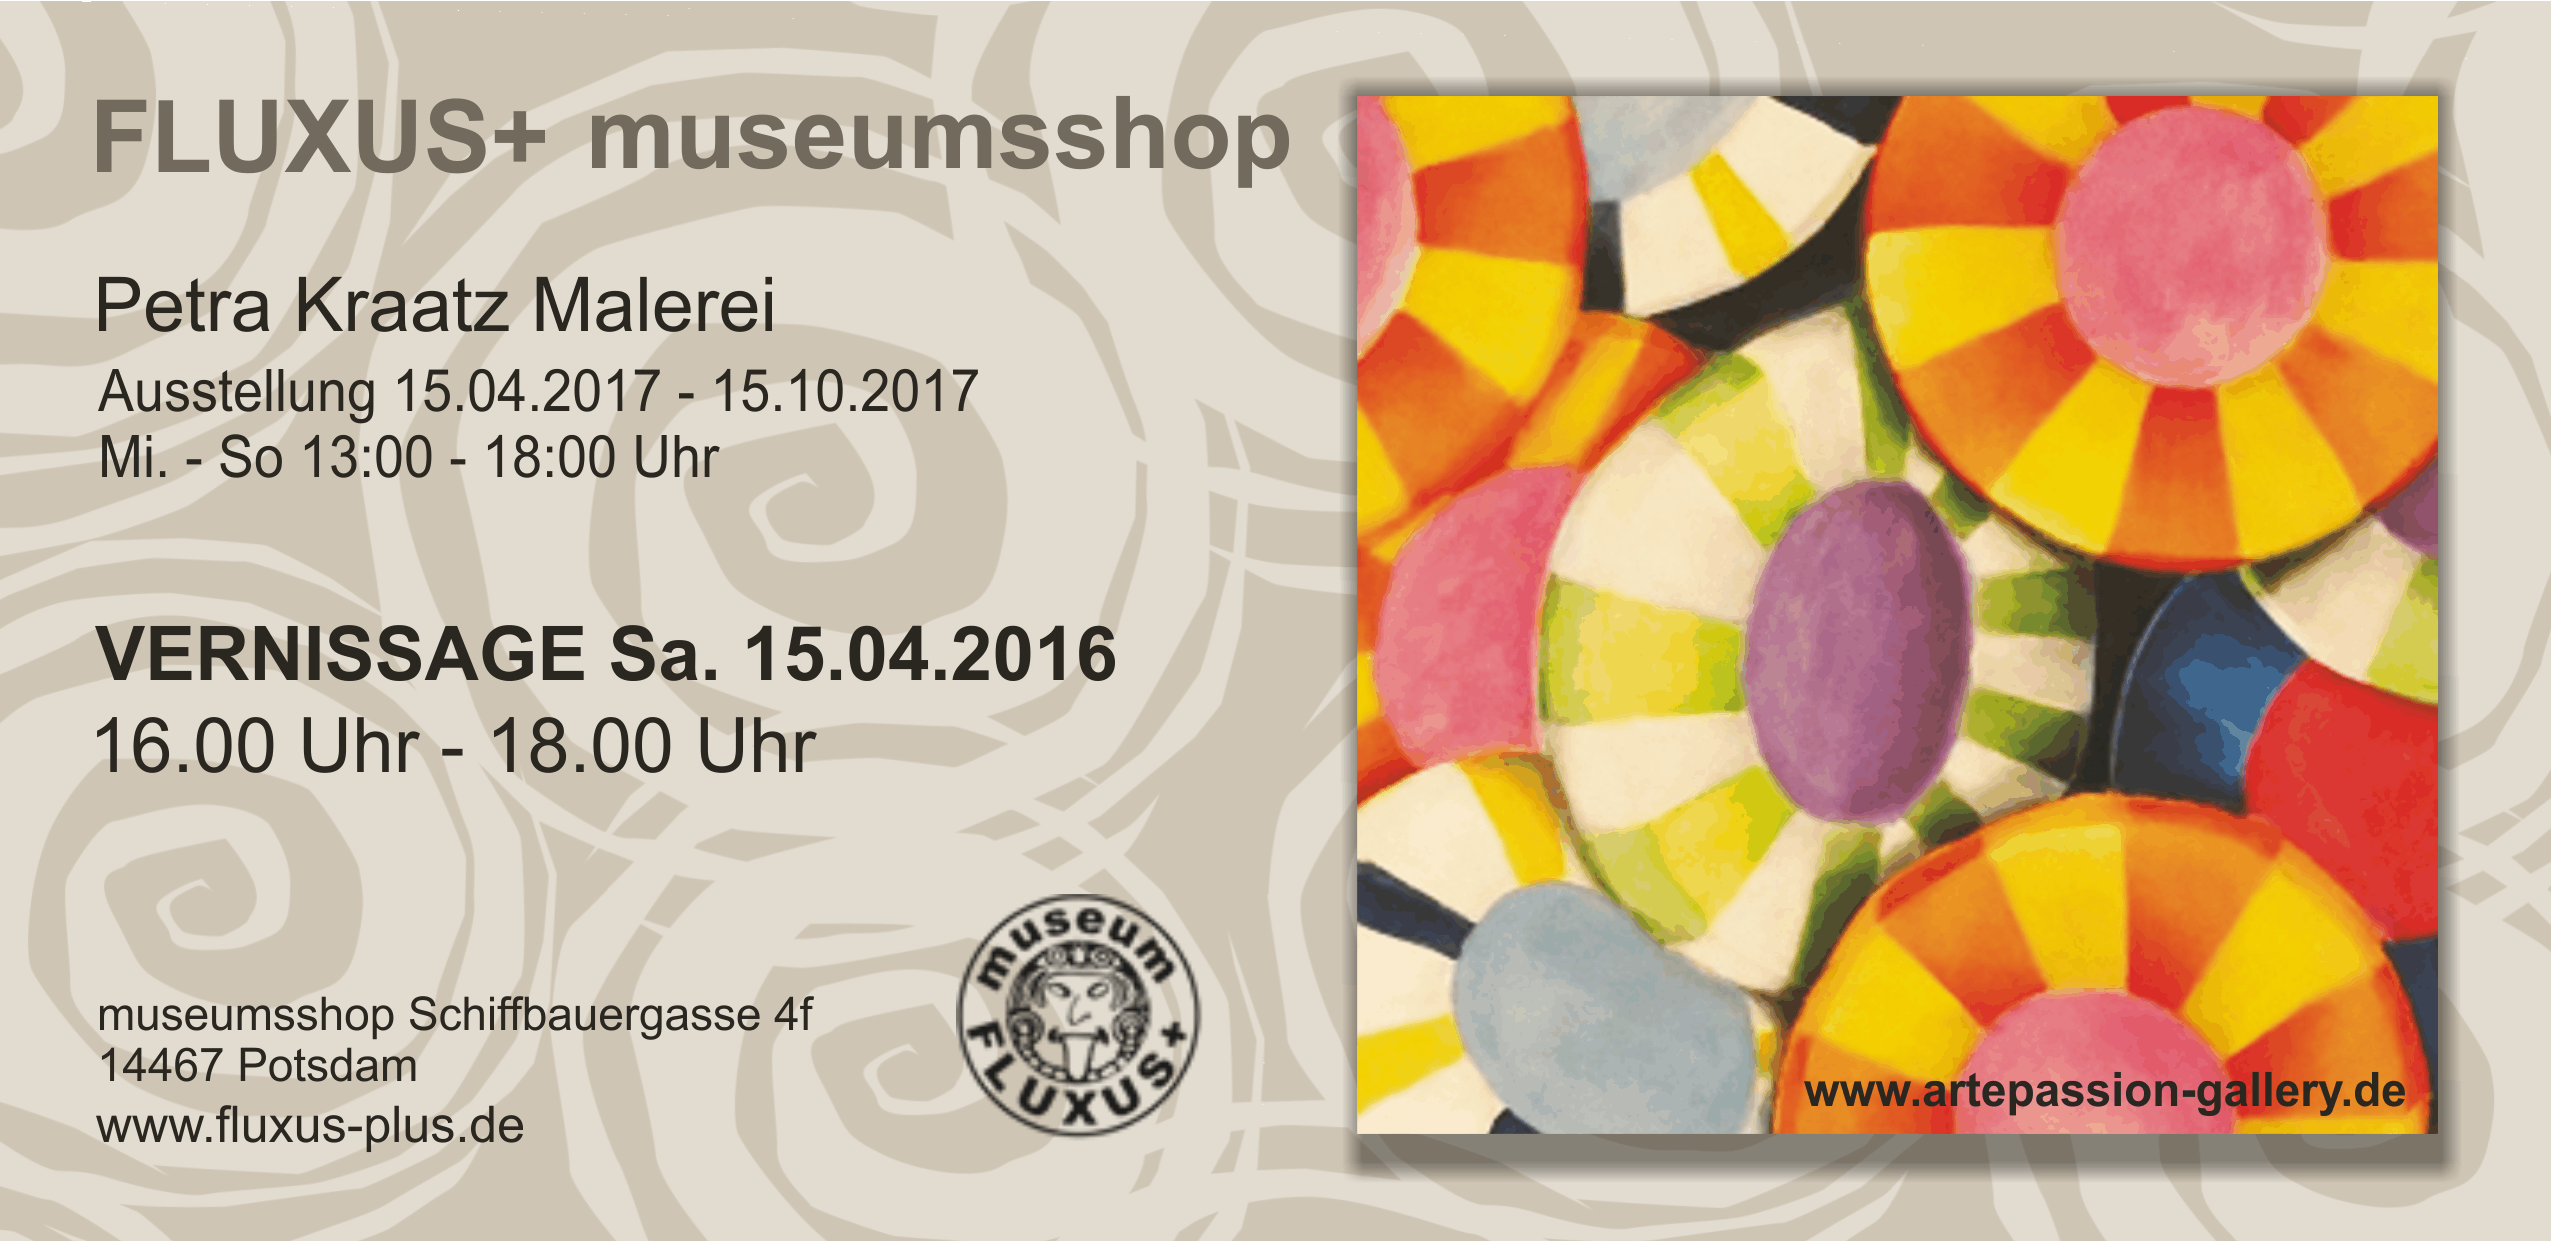 Vernissage_Fluxus_museumsshop_Potsdam_15.4.2017